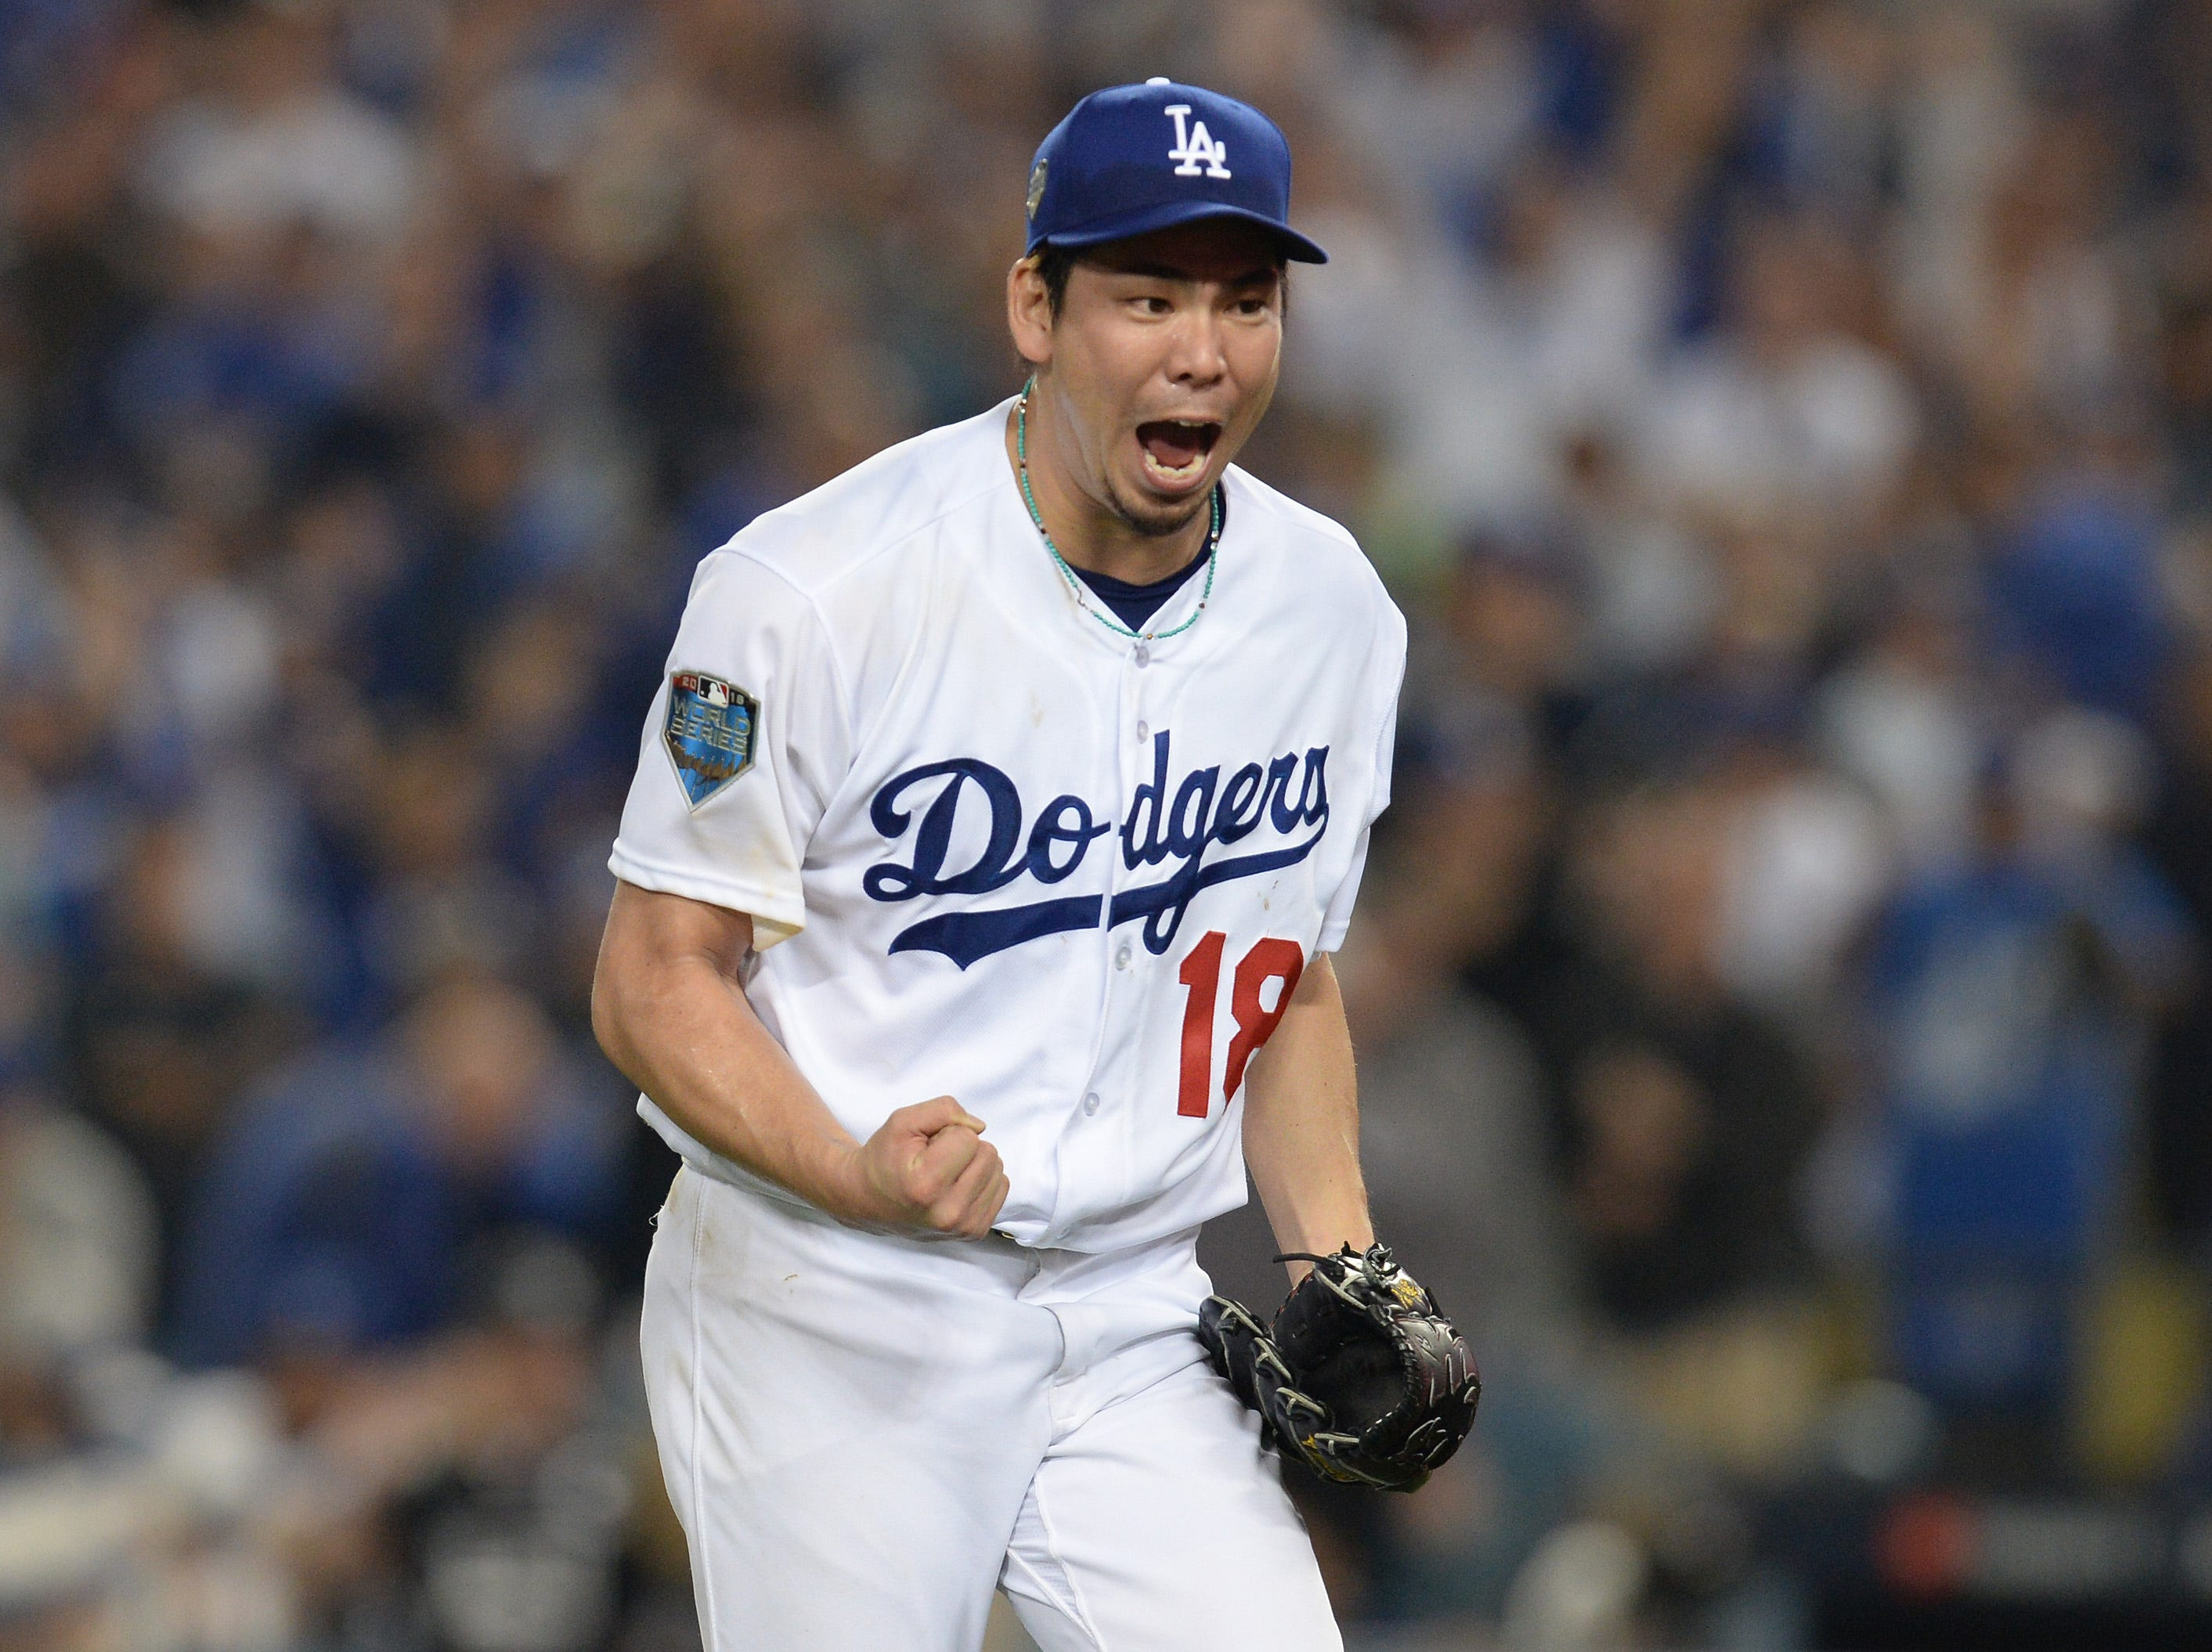 Game 3 at Dodger Stadium: Kenta Maeda celebrates a strikeout to end the top of the 15th.